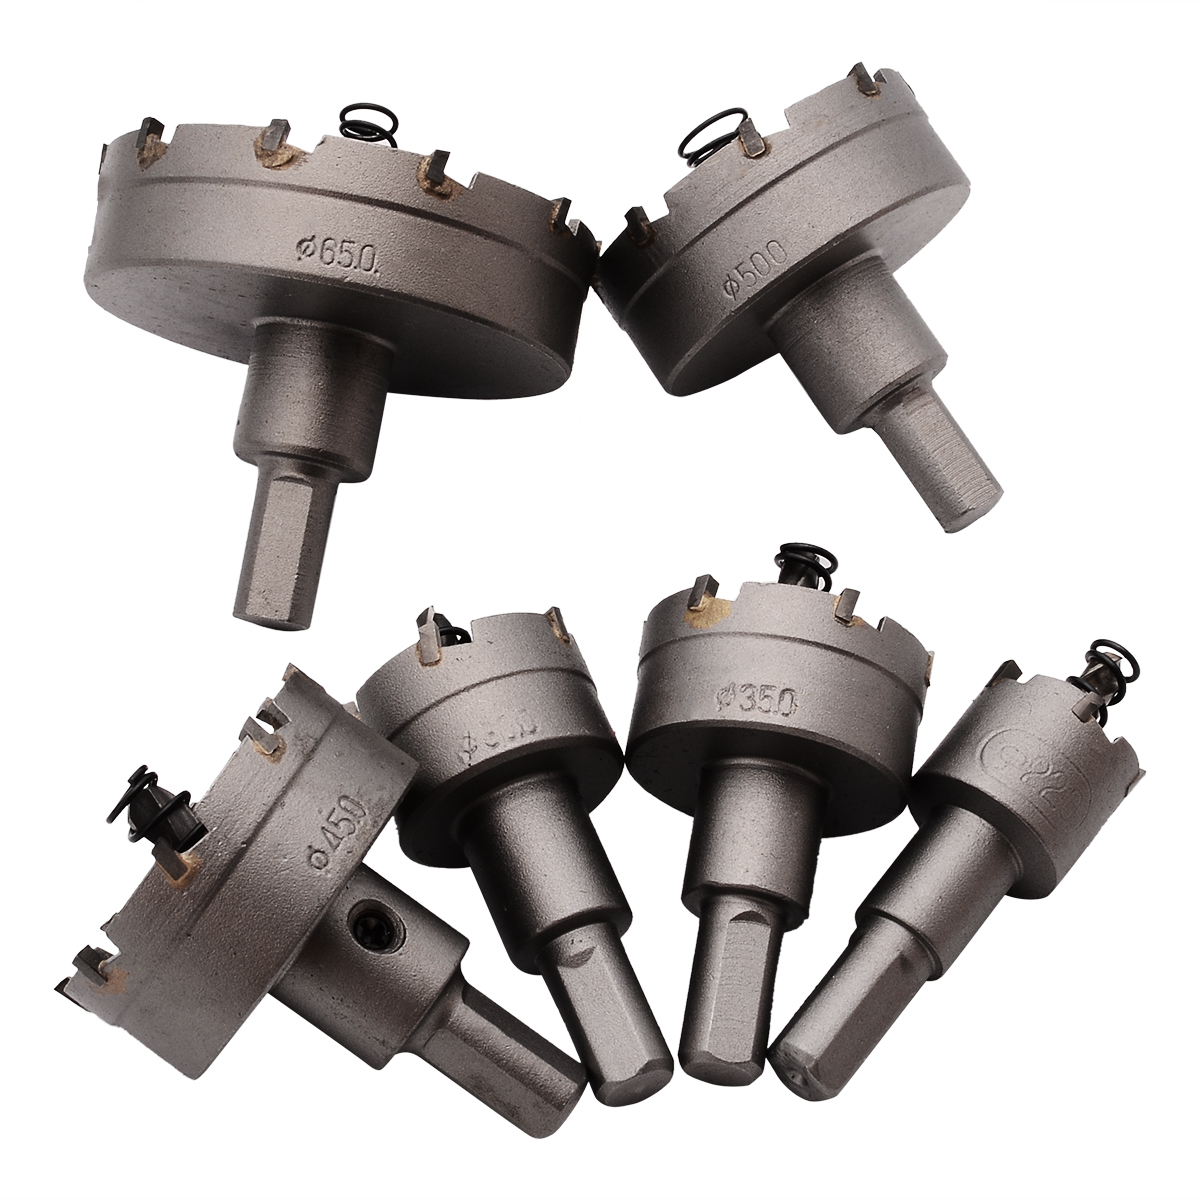 6Pcs Carbide Tip Stainless Steel TCT Drill Bit Set Hole Saw Cutter Alloy Tool For Thick Steel Plates Cast Iron Stainless Steel 6pcs carbide tip tct drill bit set stainless steel hole saw cutter for metal alloy drilling tool 22 65mm